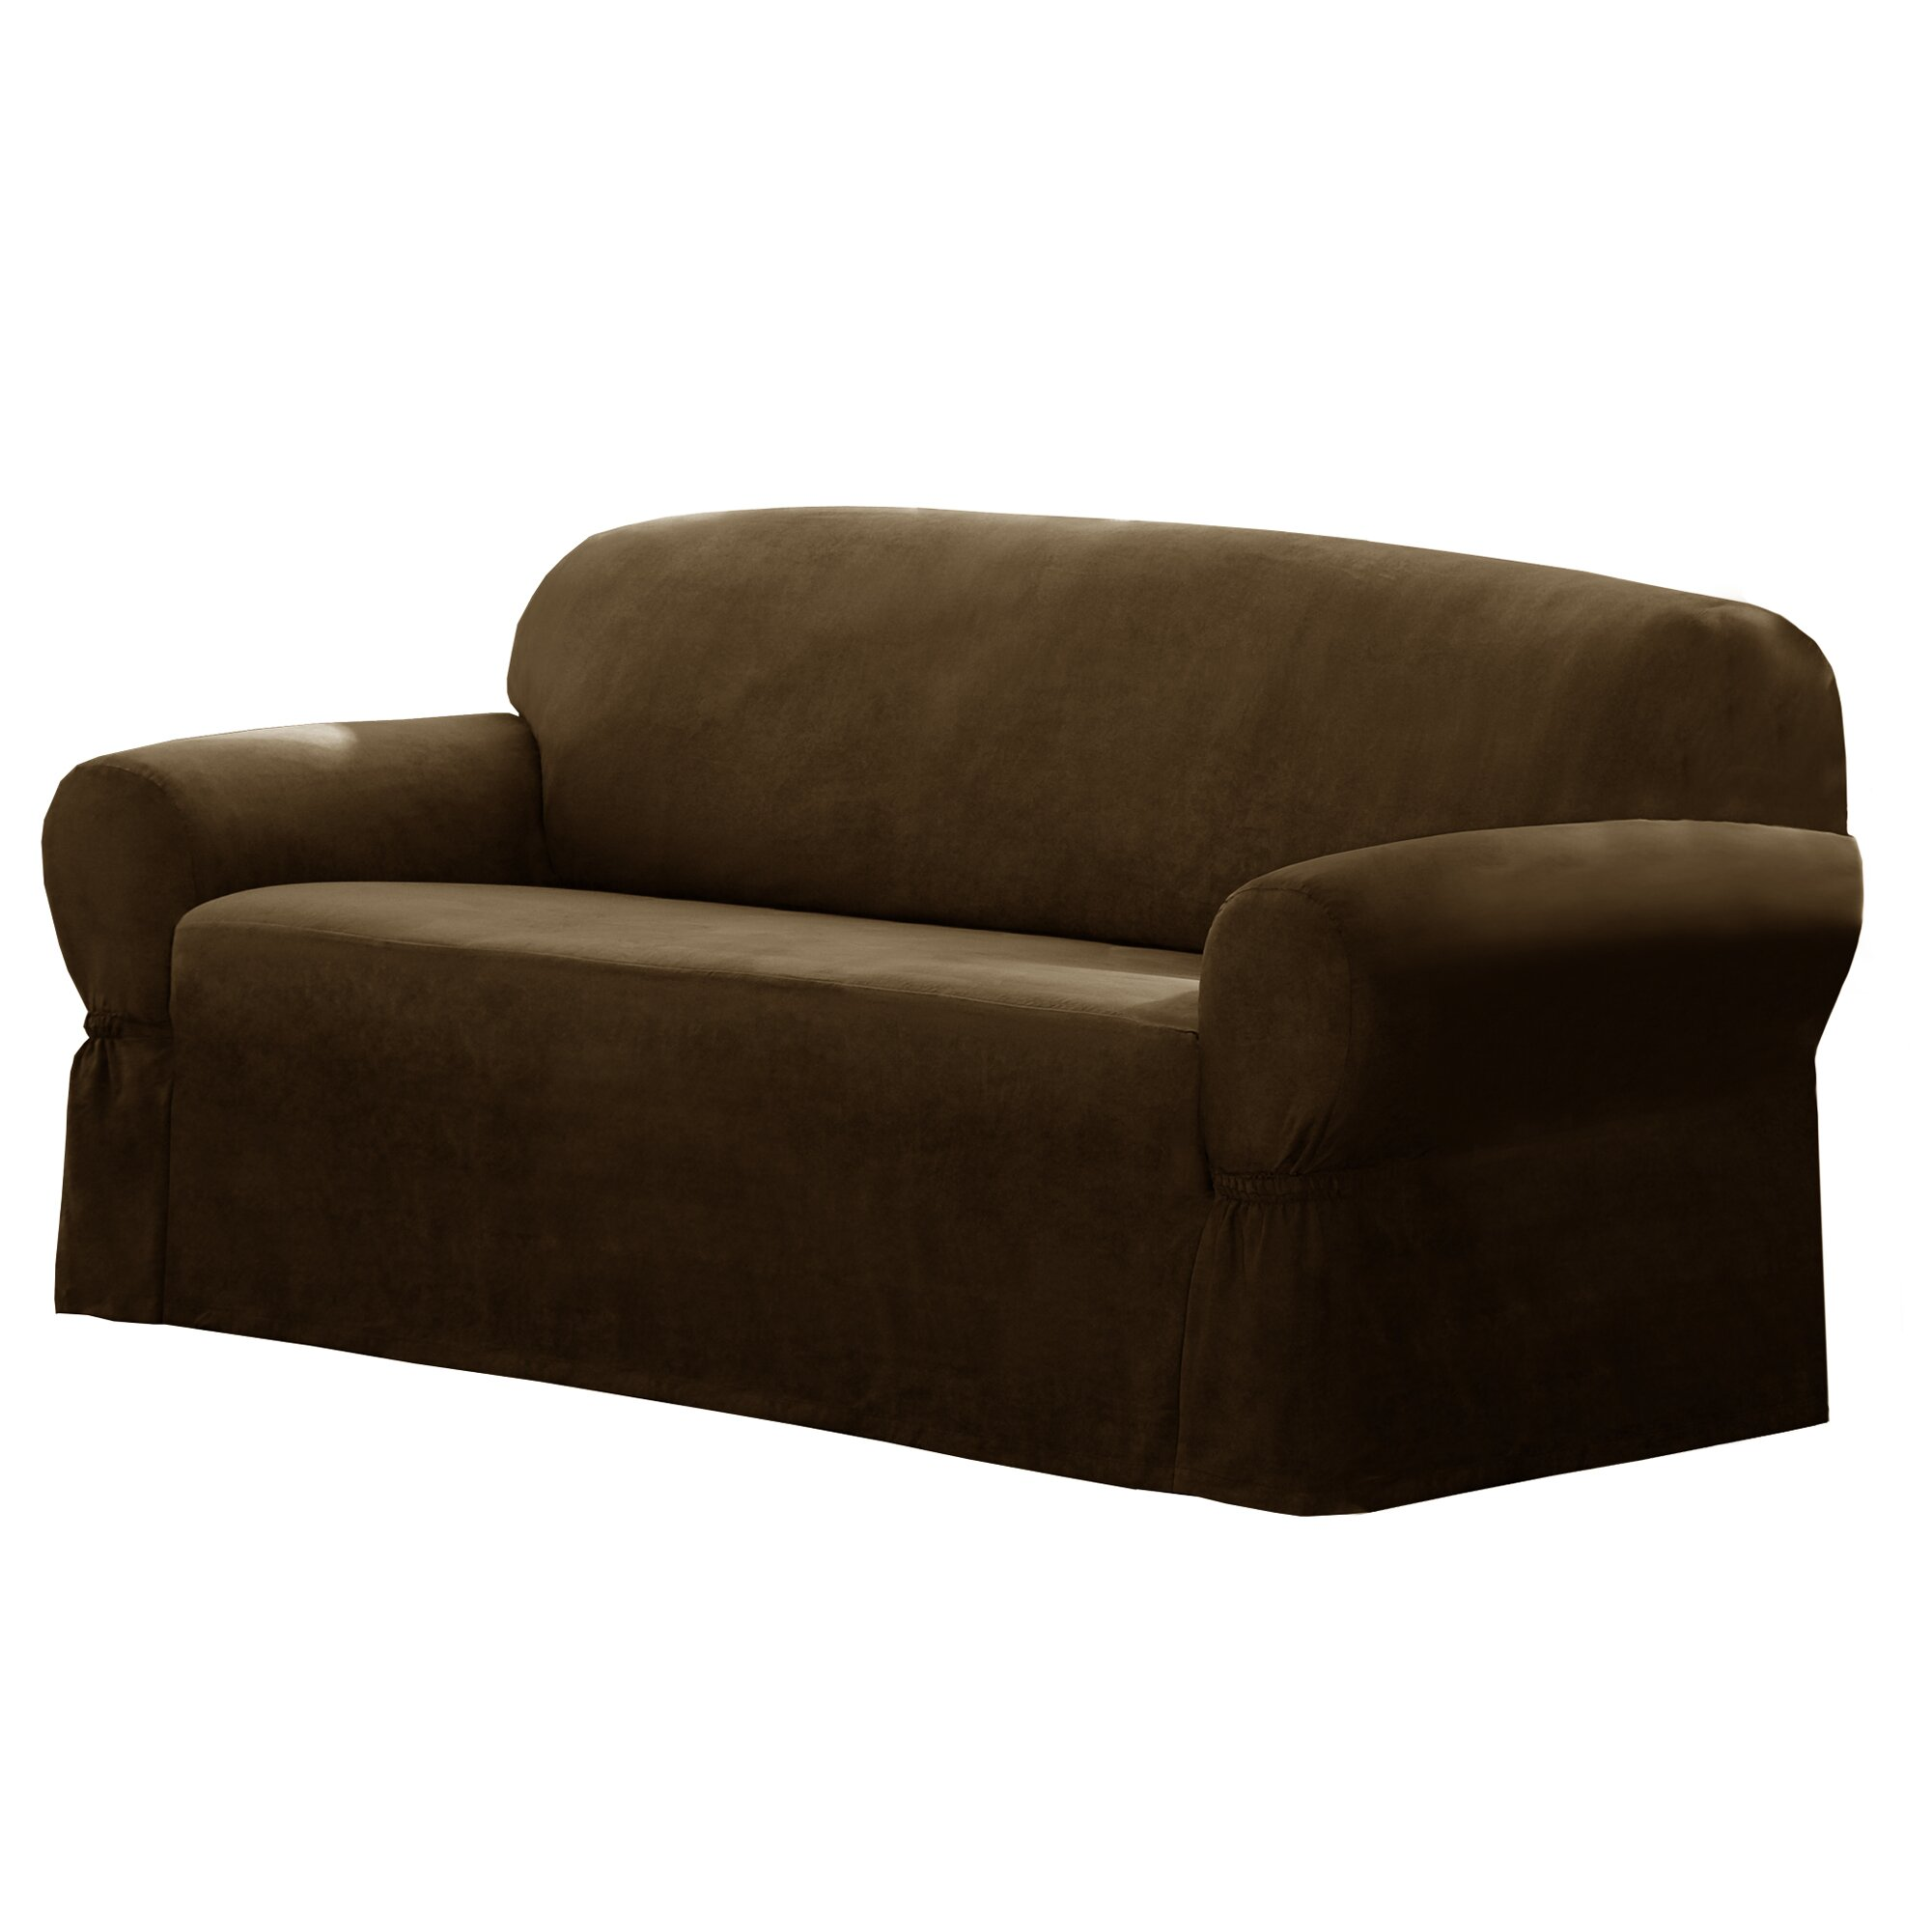 maytex t cushion loveseat sofa slipcover reviews wayfair